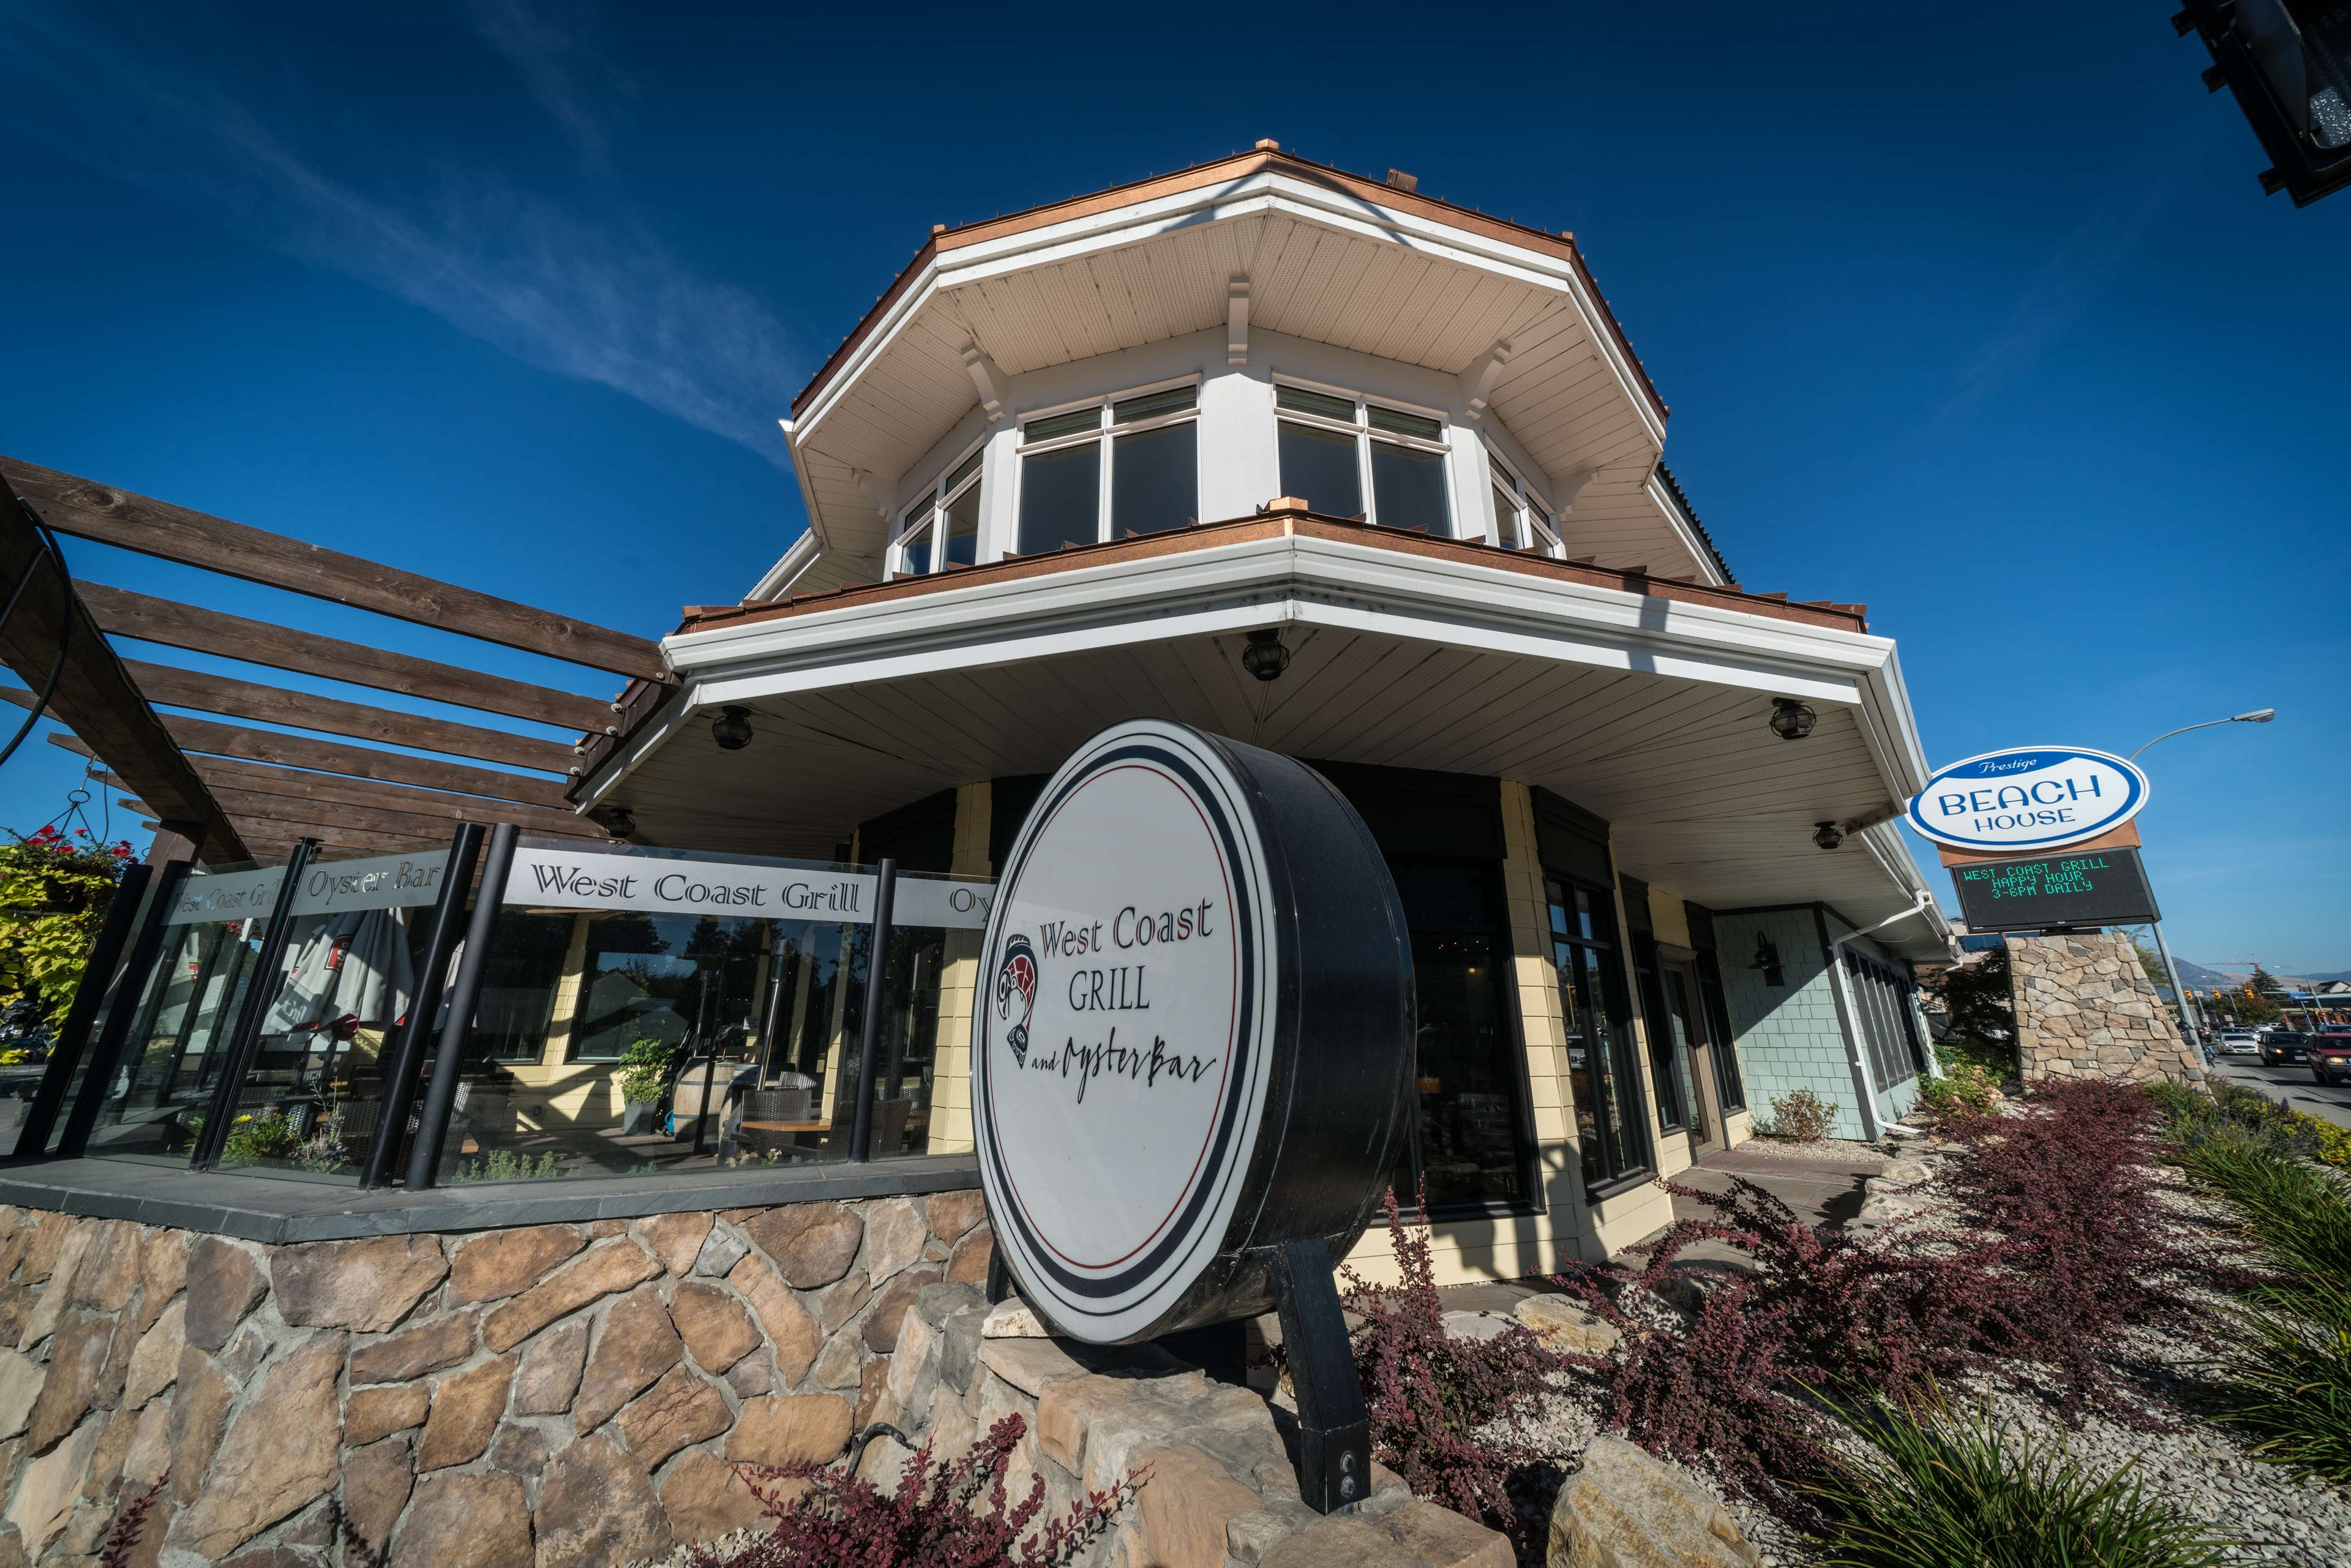 Prestige Beach House, BW Premier Collection in Kelowna: On-site West Coast Grill and Oyster Bar